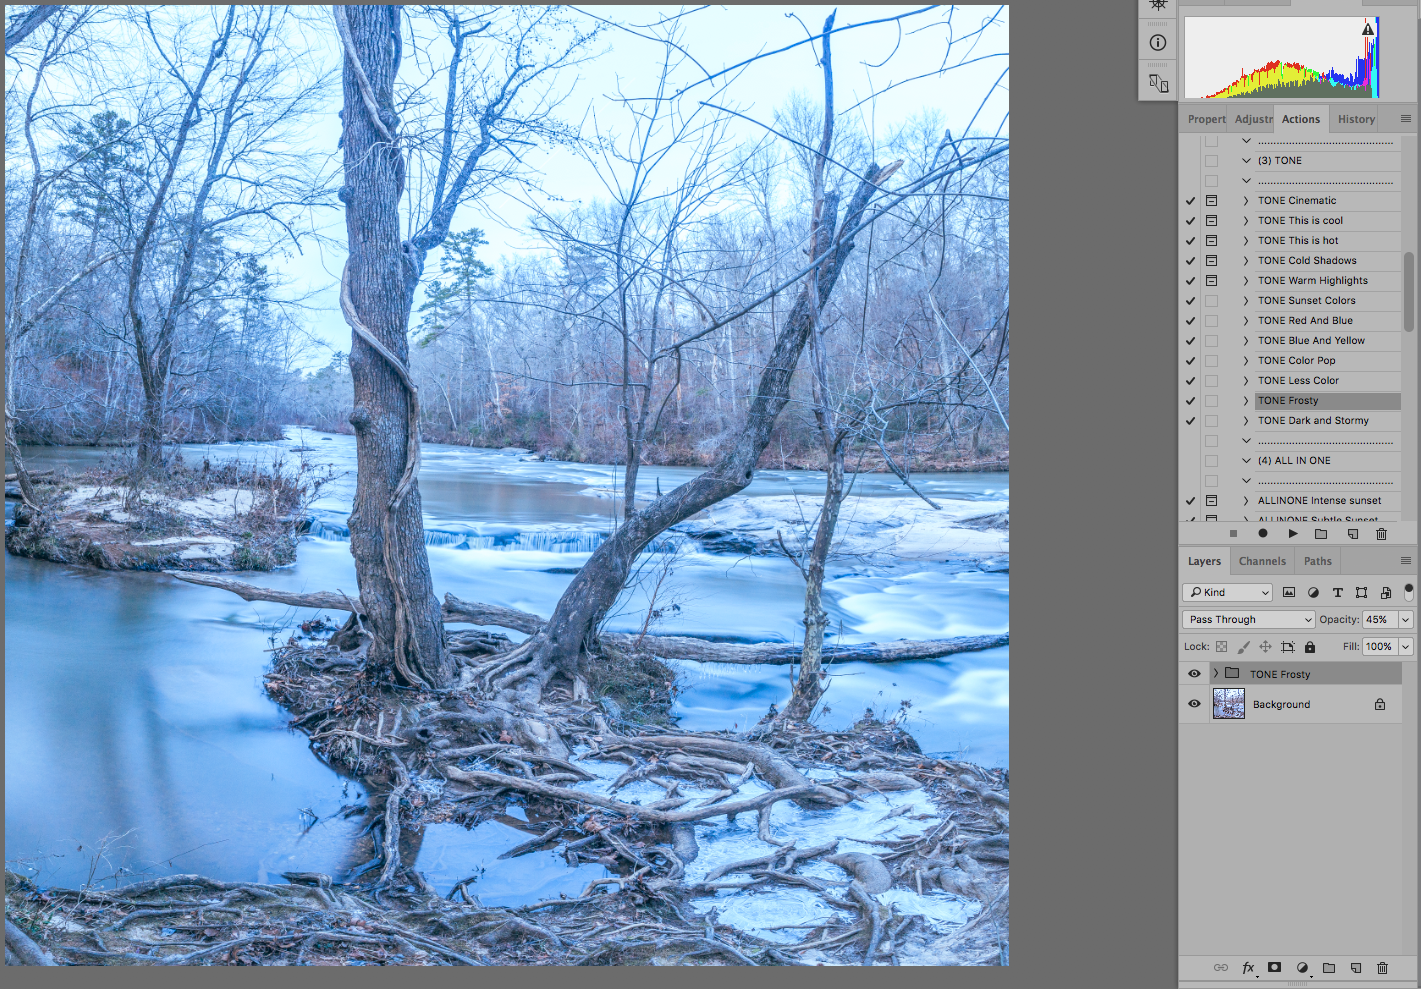 Frosty, reduced opacity. Really like this version. It was so cold. Looking at this makes me cold.